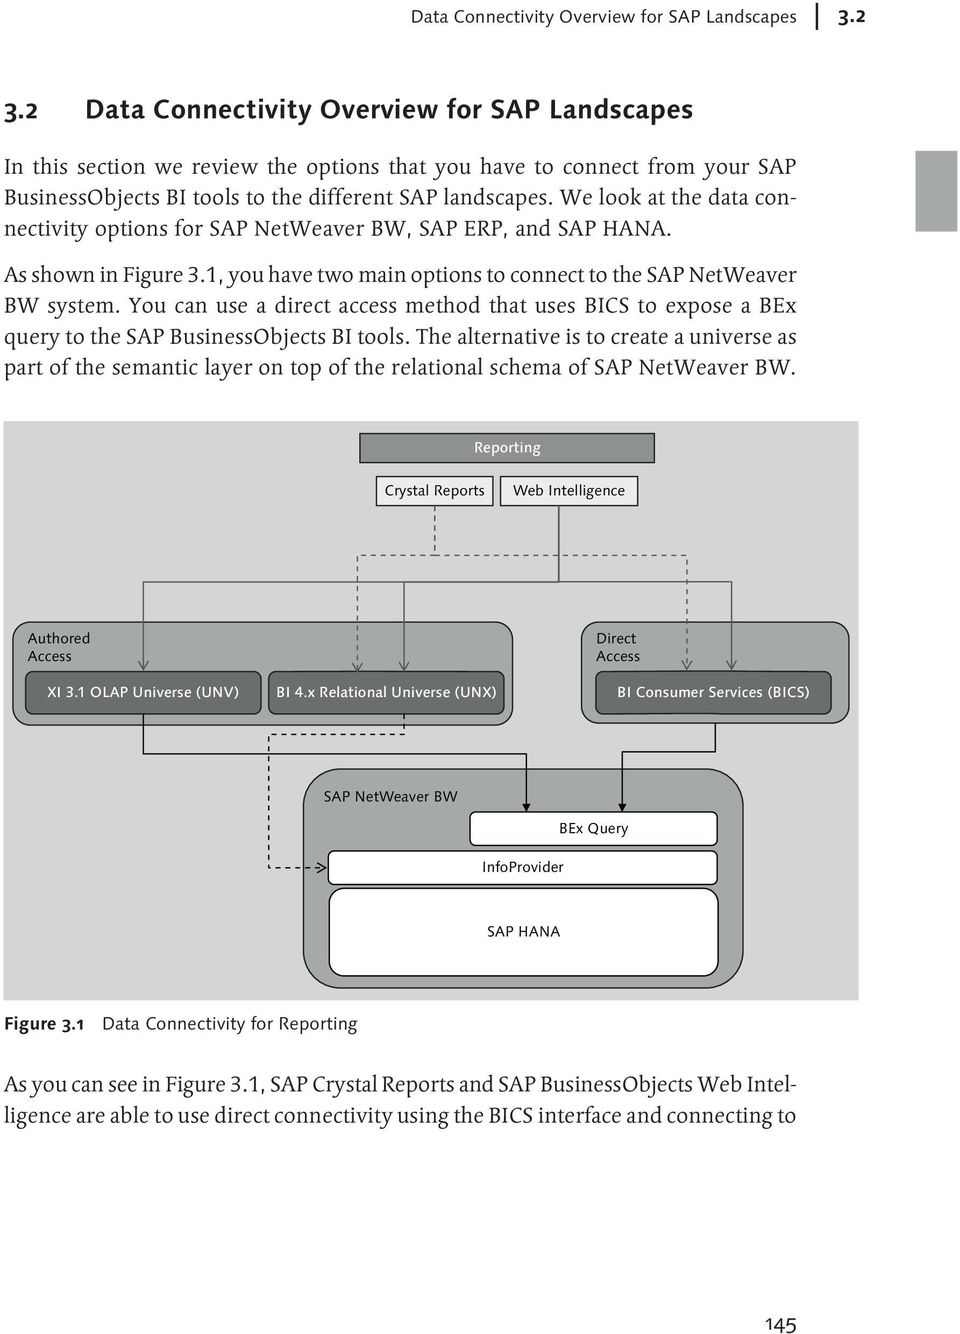 We look at the data connectivity options SAP NetWeaver BW, SAP ERP, and SAP HANA. As shown in Figure 3.1, you have two main options to connect to the SAP NetWeaver BW system.